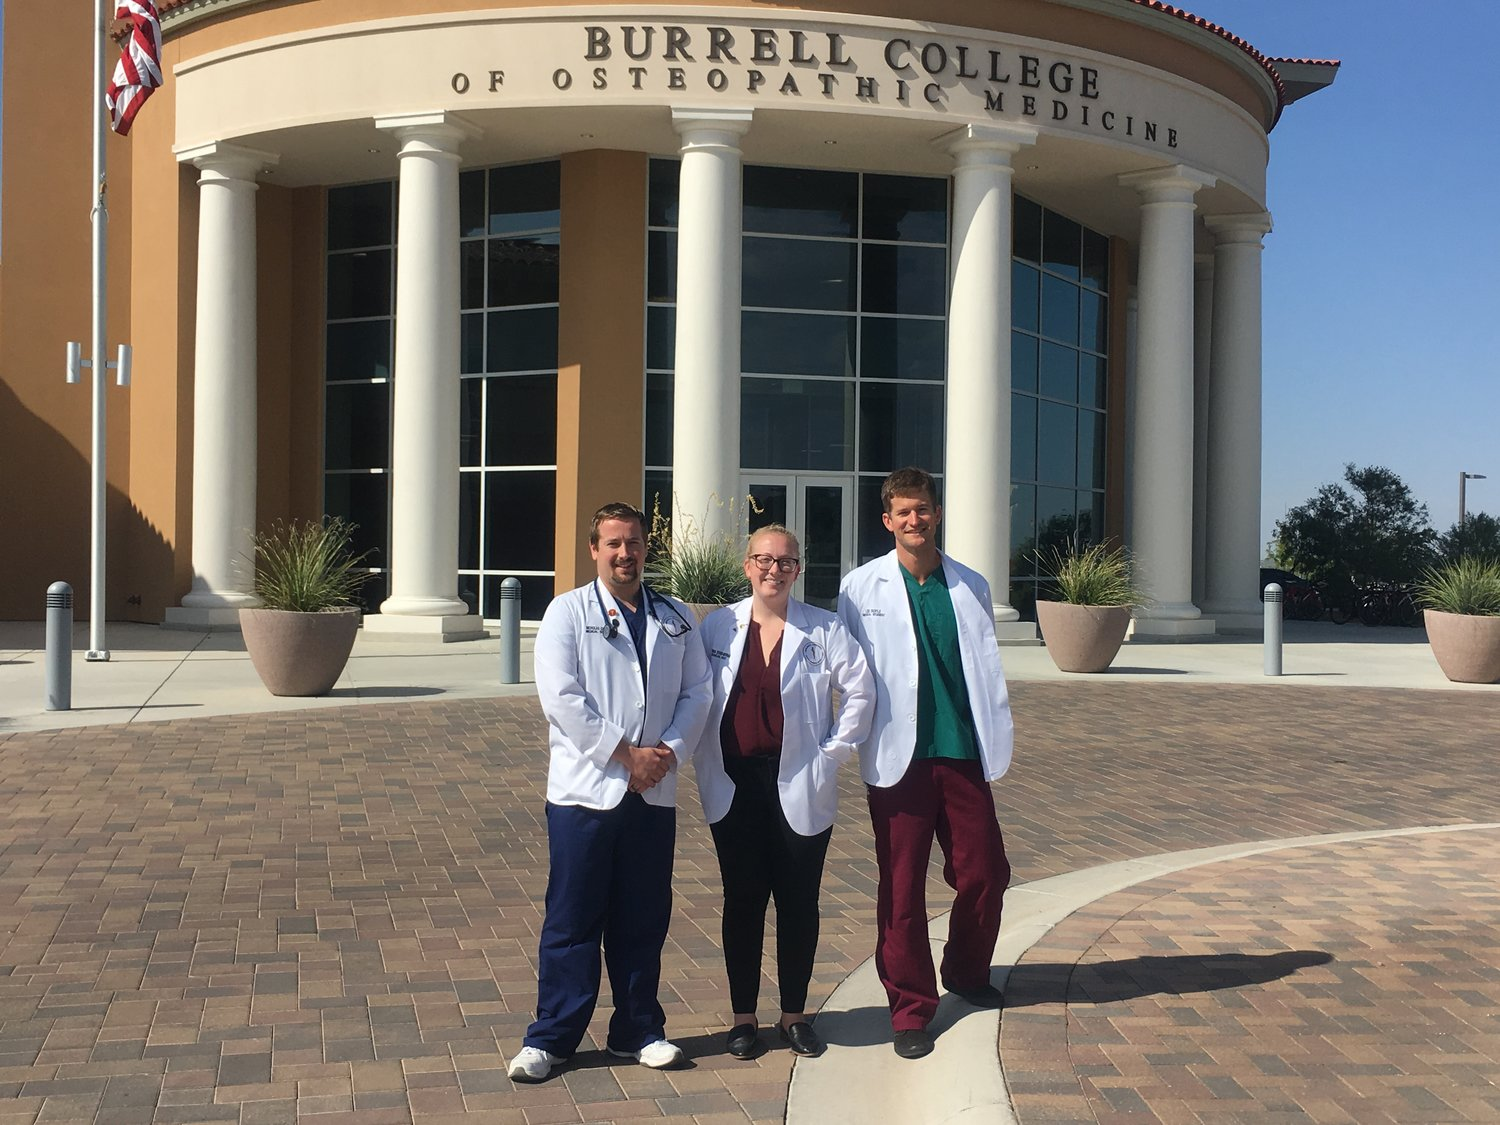 From left, Youth Medical Explorers Program Co-Chairs Nicholas Chajec, Virgina Stoddard-Merriam and Lee Boyle stand outside Burrell College of Osteopathic Medicine, located on the New Mexico State University campus.